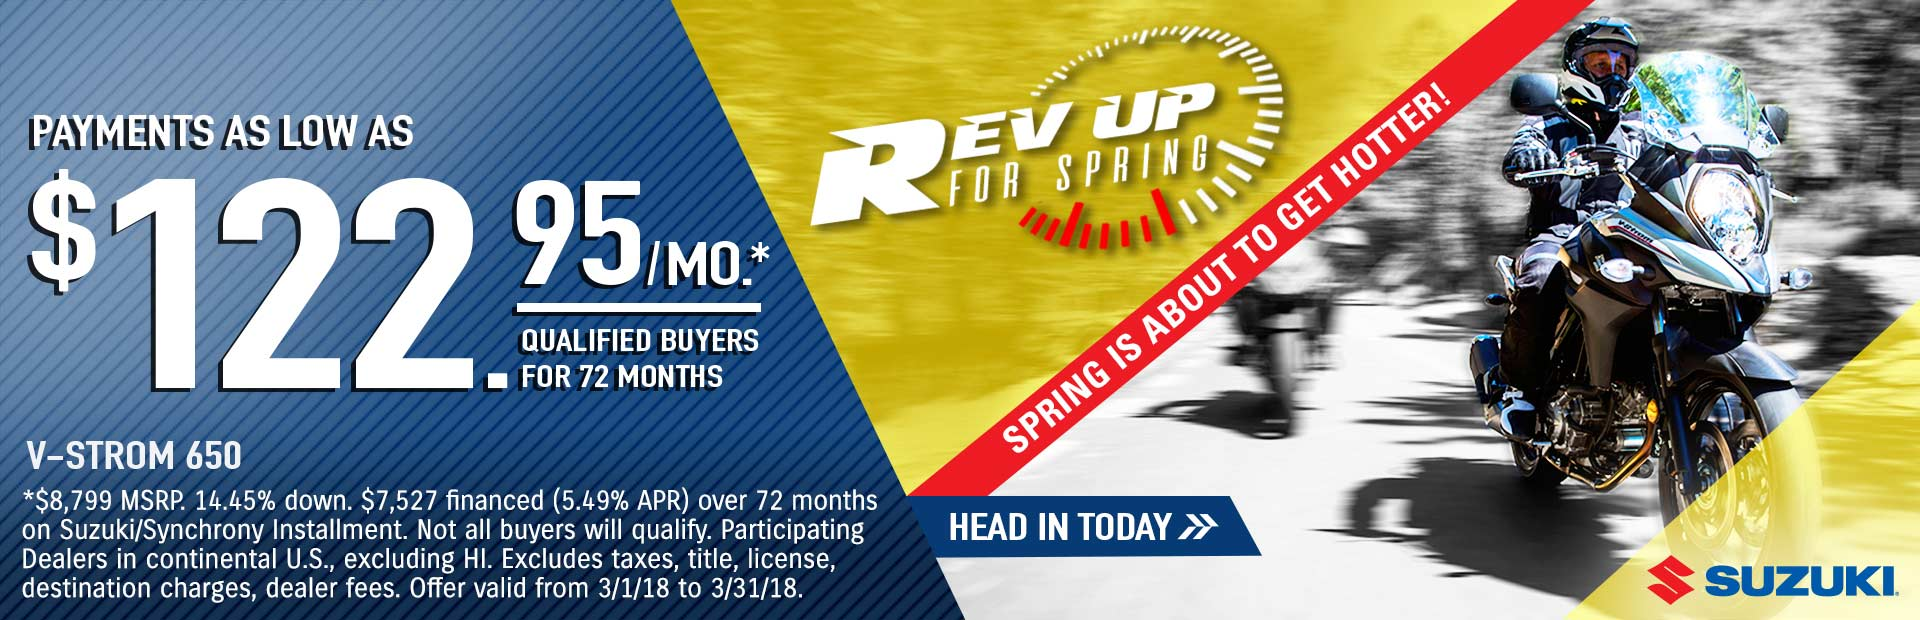 Suzuki: Rev Up for Spring - V-STROM 650